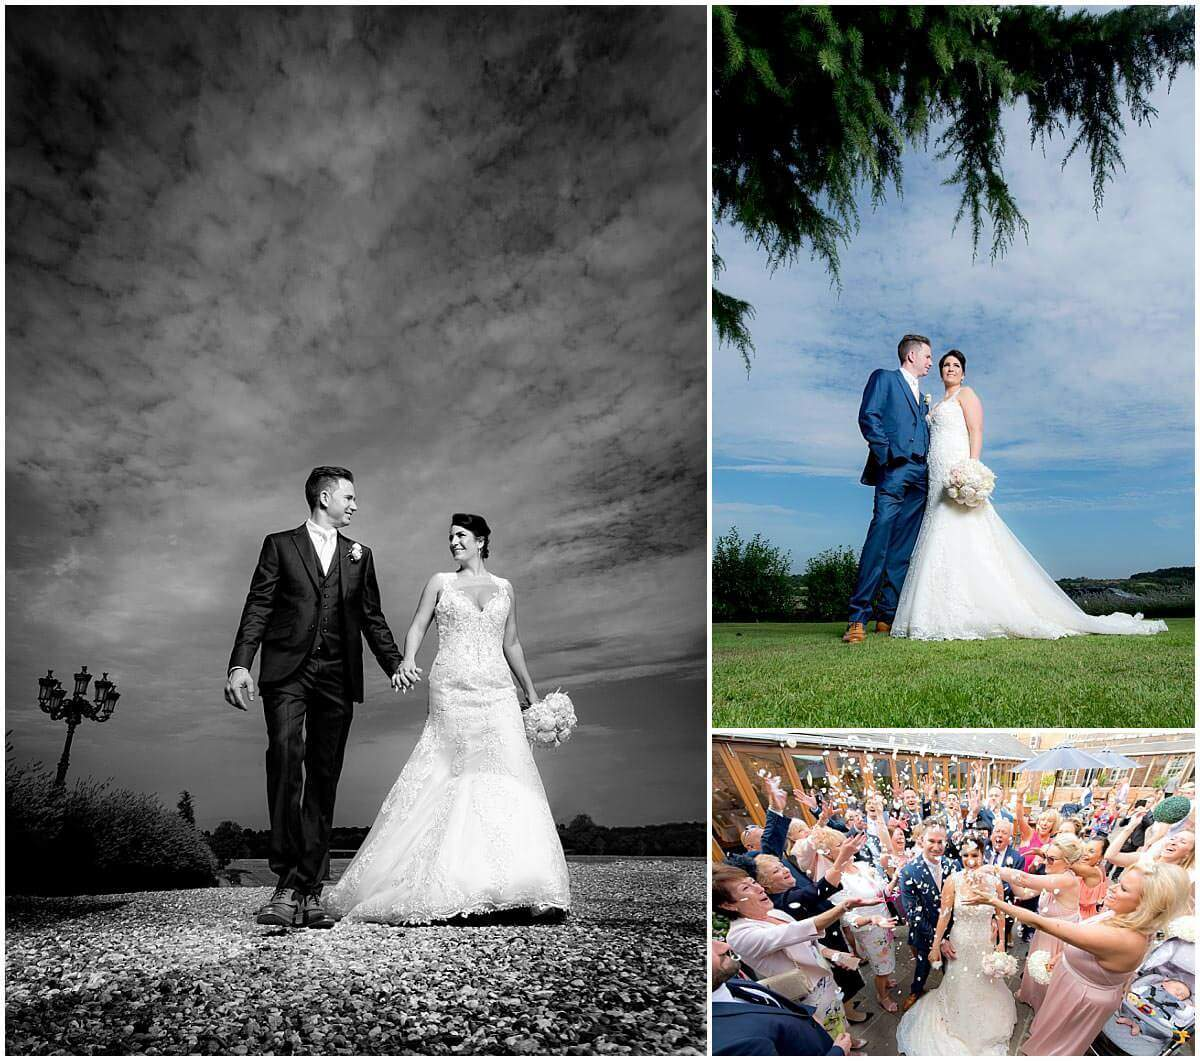 Nottingham Wedding Photographer Matt Selby 4